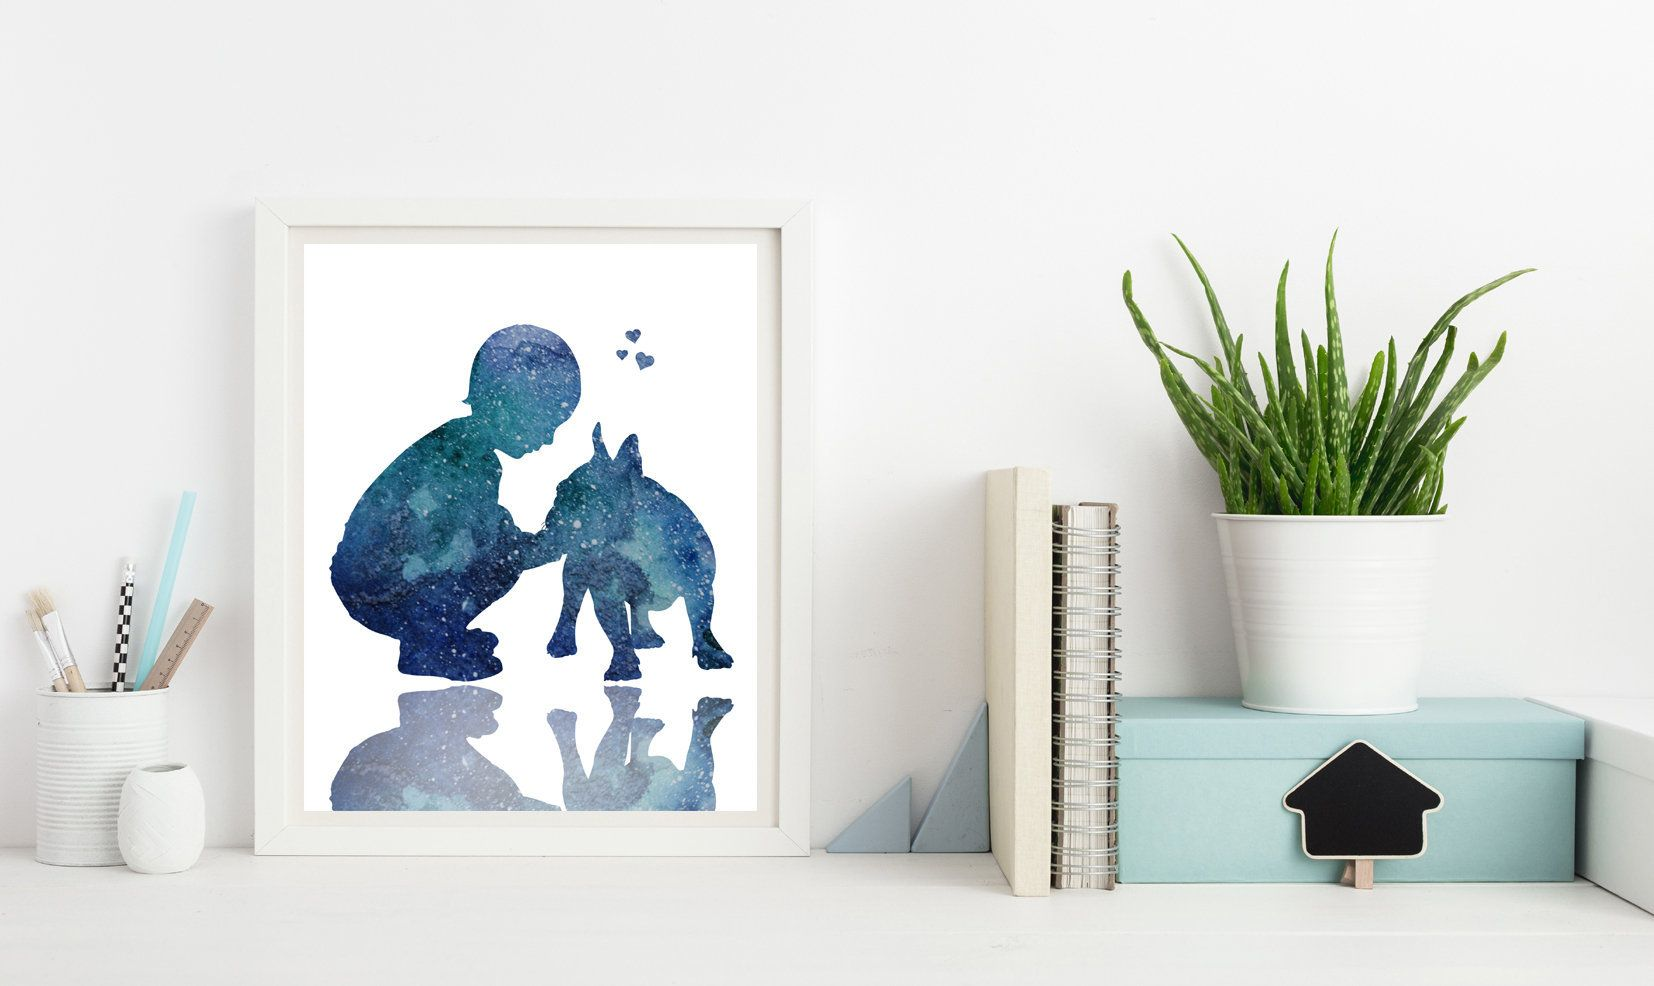 French bulldog wall decor, Boy with dog, Watercolor